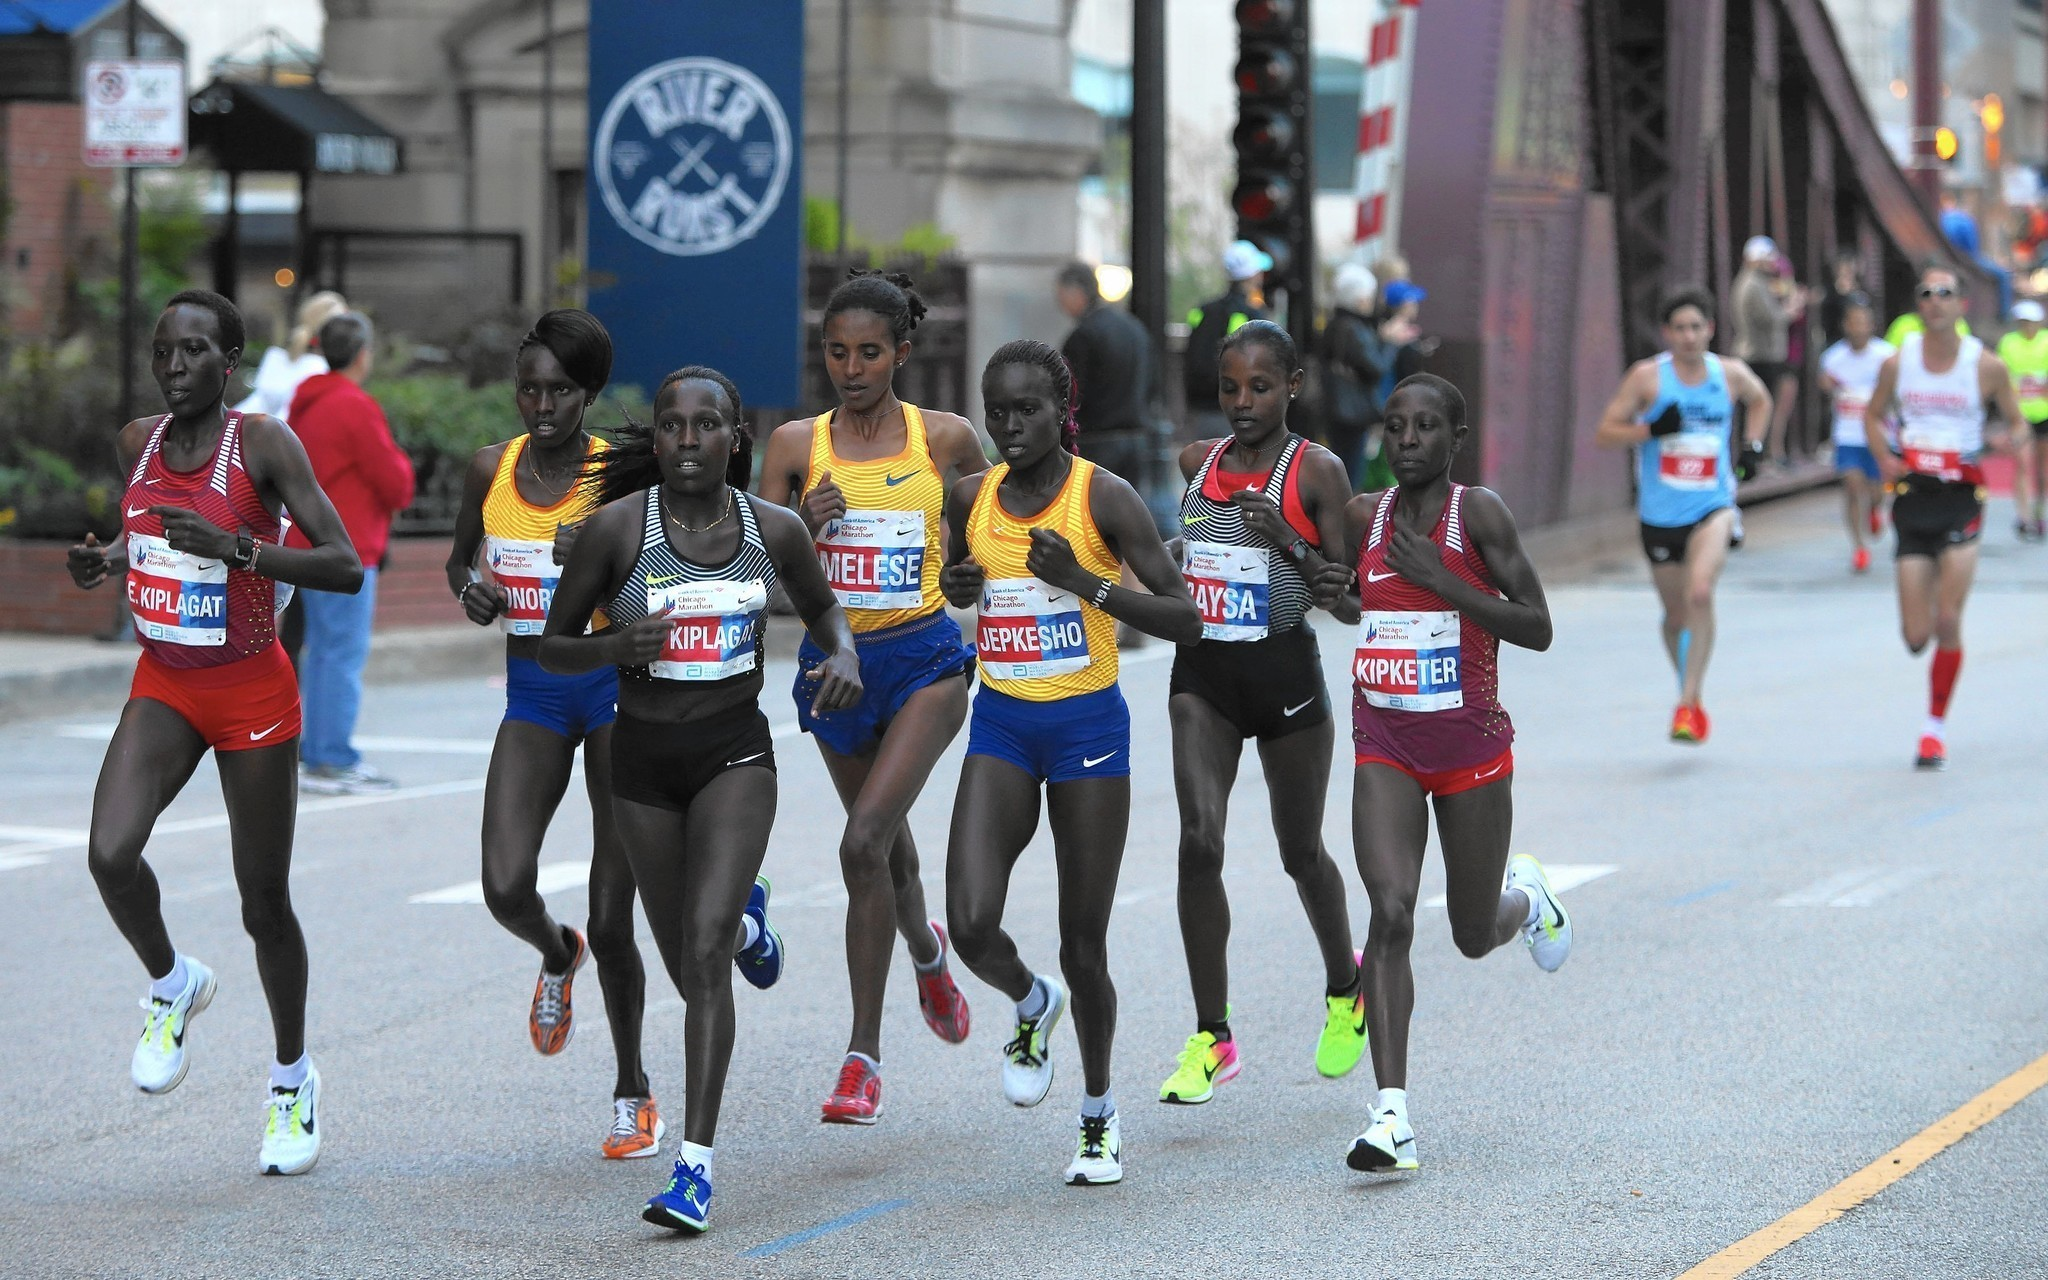 Marathon runners photo